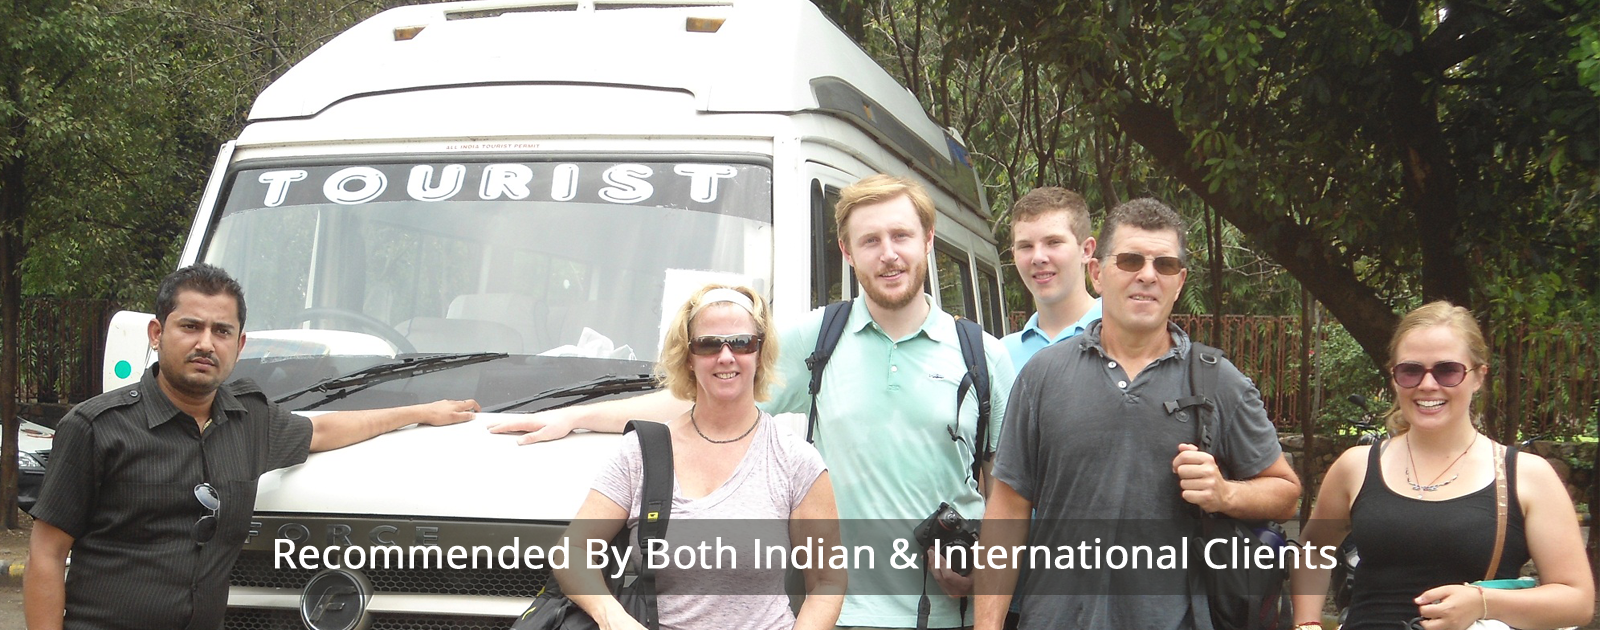 sehgal transport in delhi, tempo traveller on hire in new delhi, tempo traveller delhi ncr